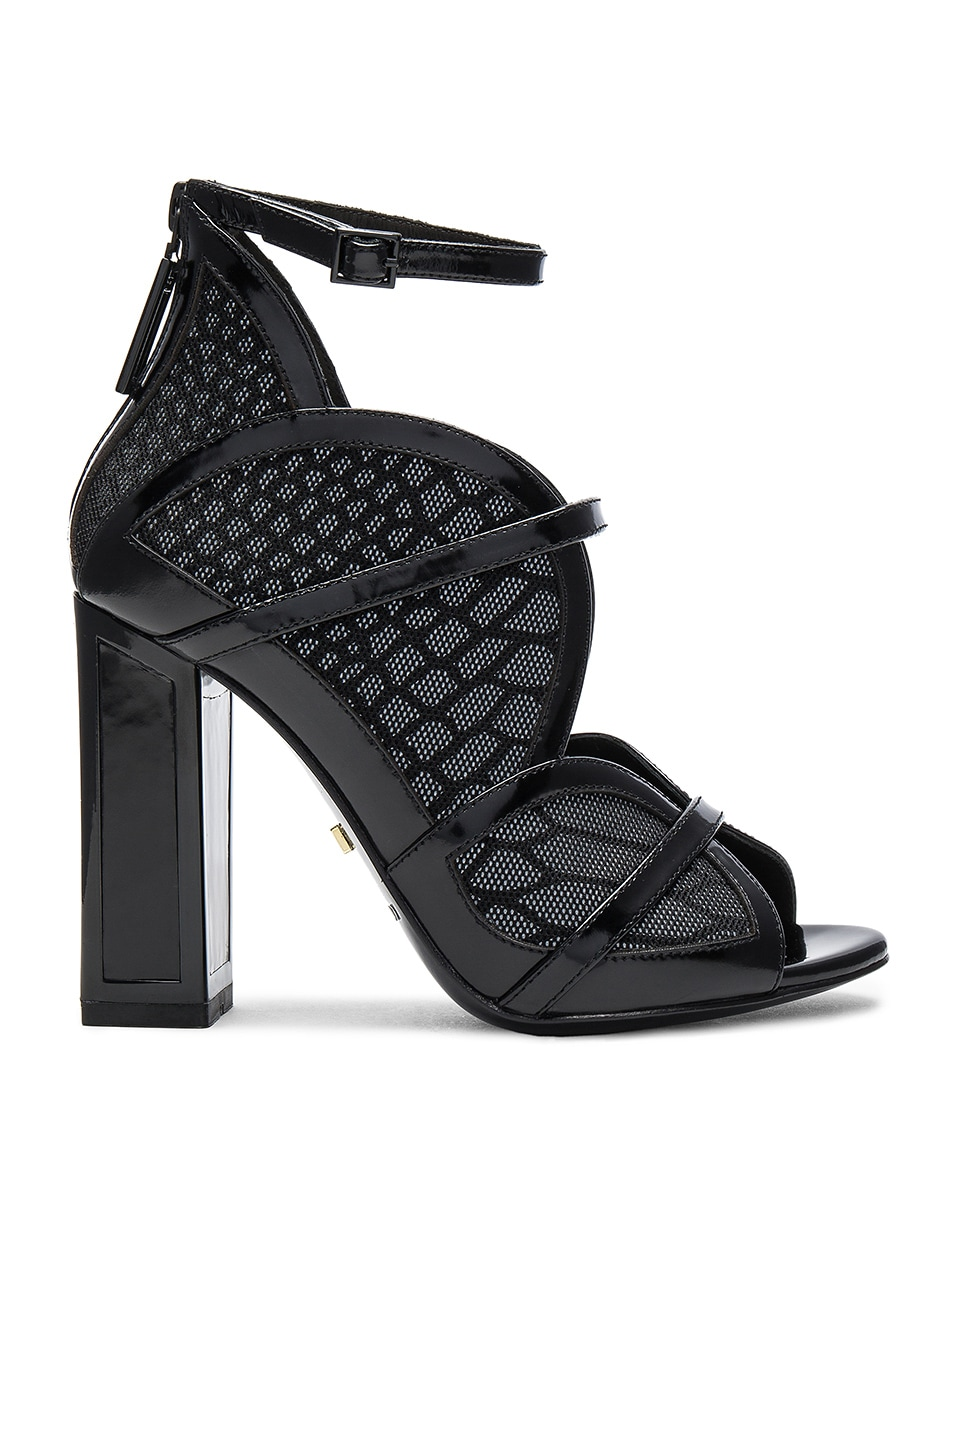 KAT MACONIE Iggy Heel in Snake Reflect